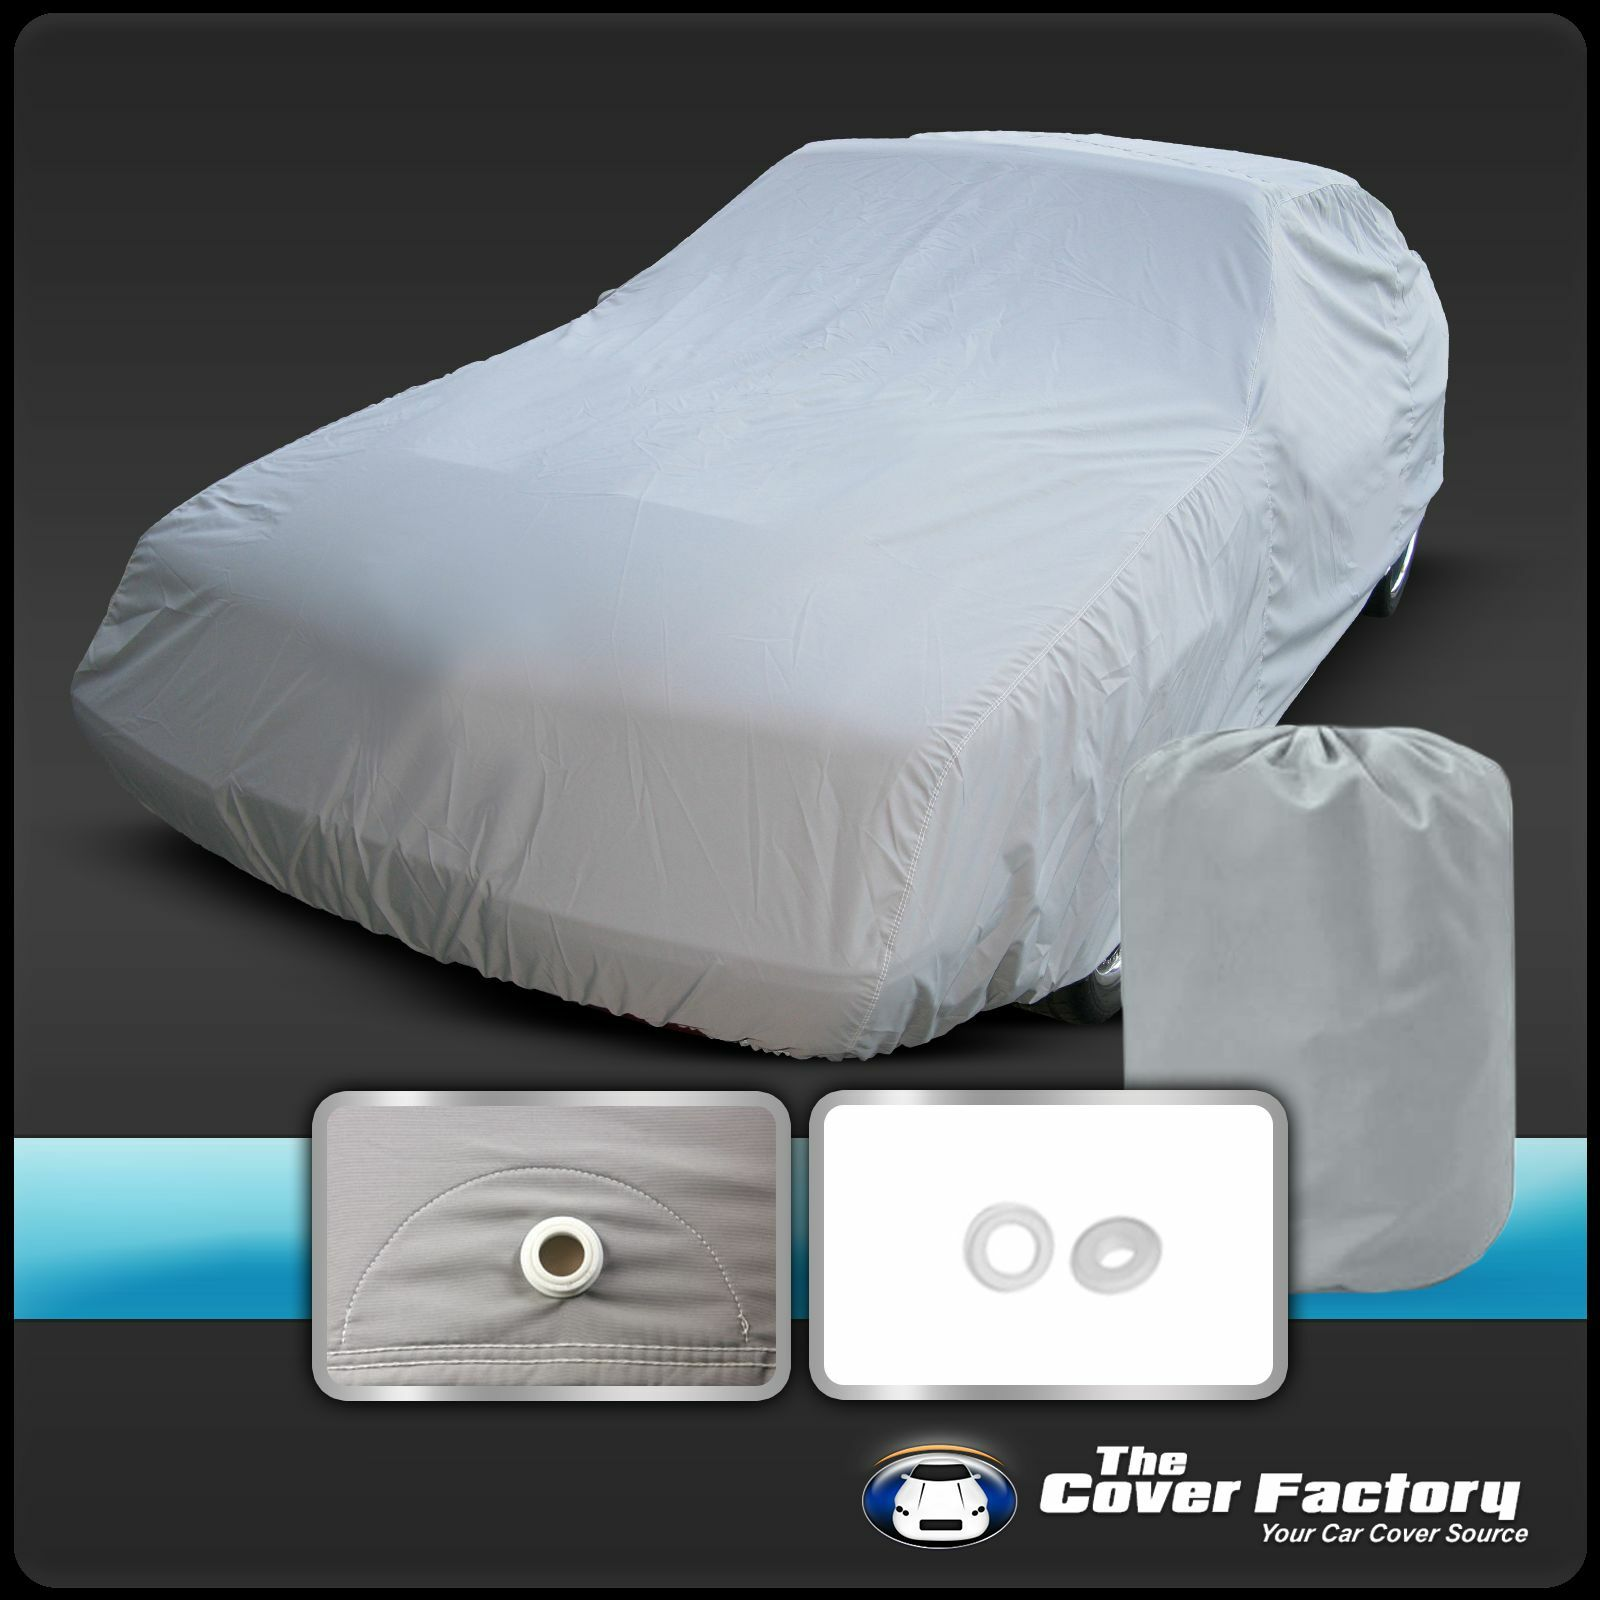 Mazda Mx-5 Miata Car Cover 1989 1990 1991 1992 1993 New Best 4 Layer Waterproof